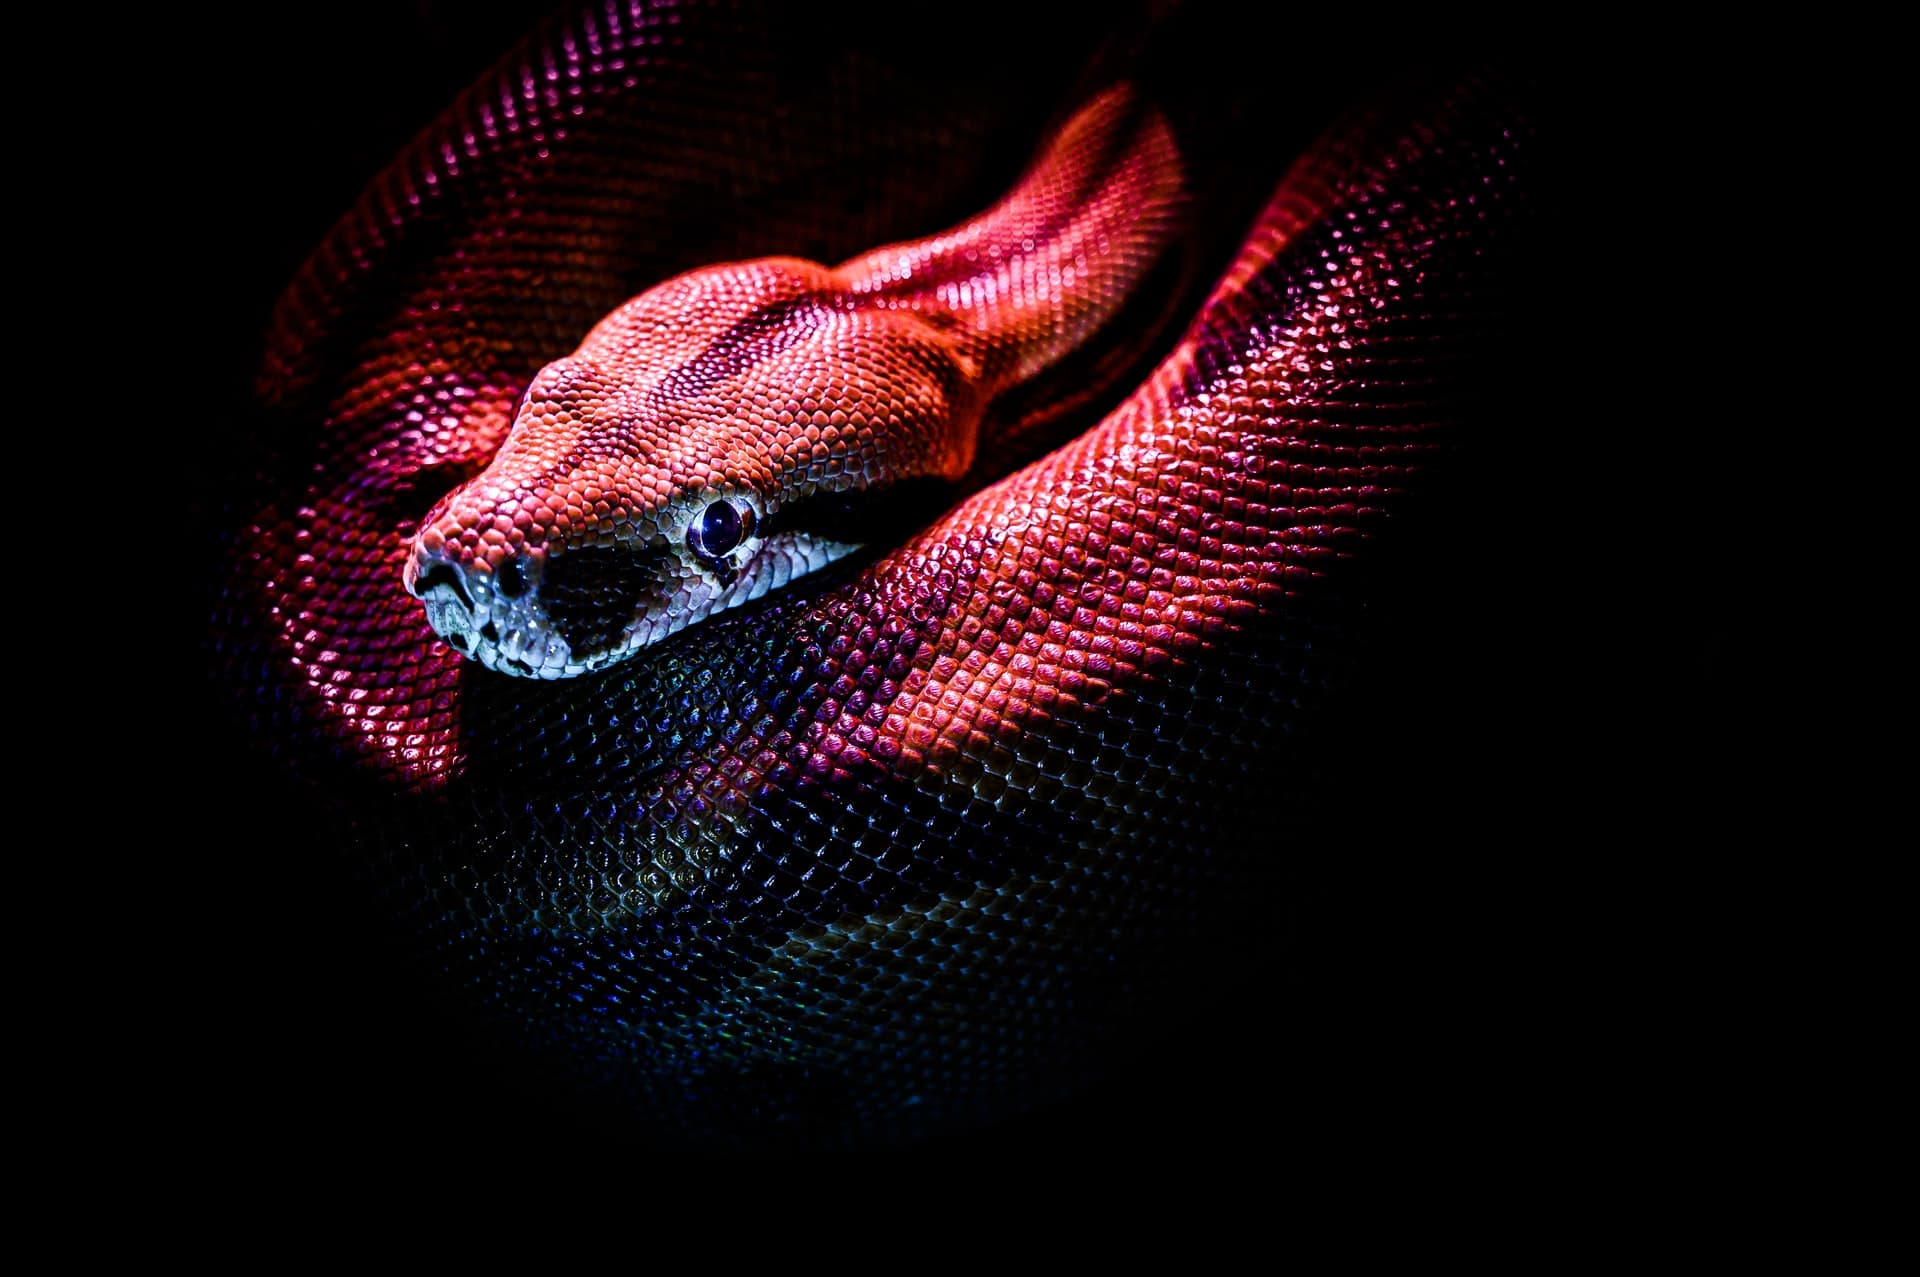 Image of a snake that symbolizes the kundalini awakening